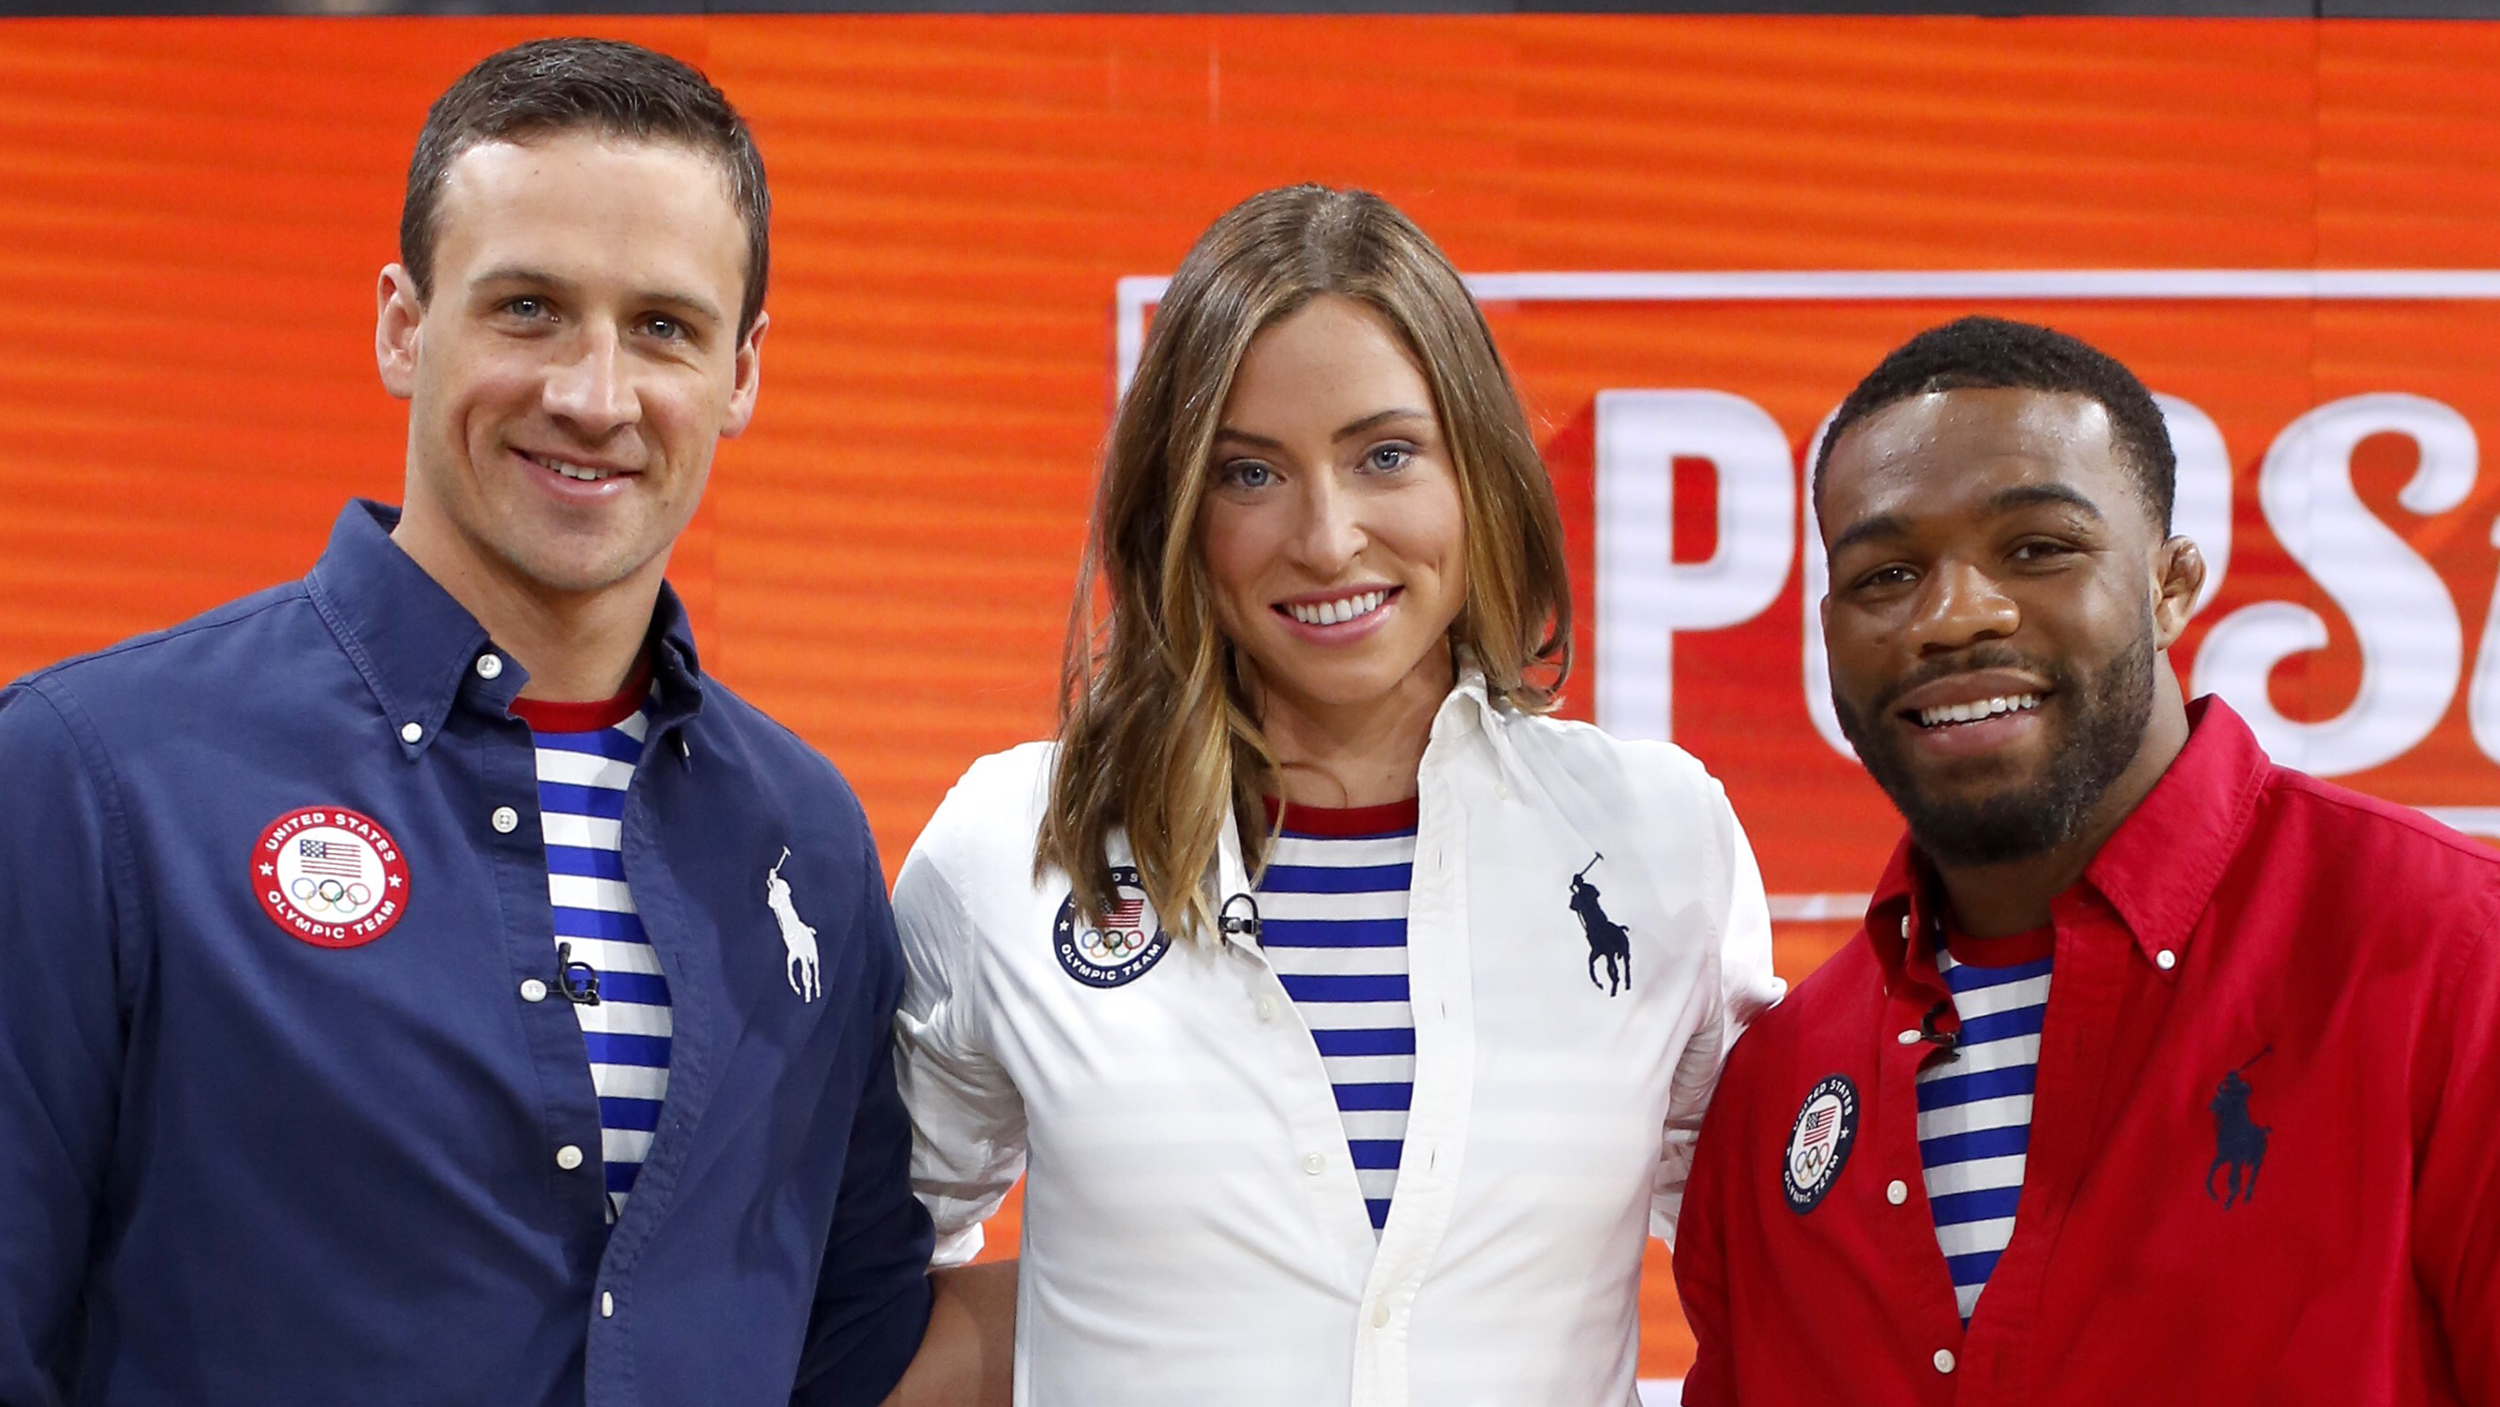 ralph lauren usa olympics 2016 ralph lauren usa collection